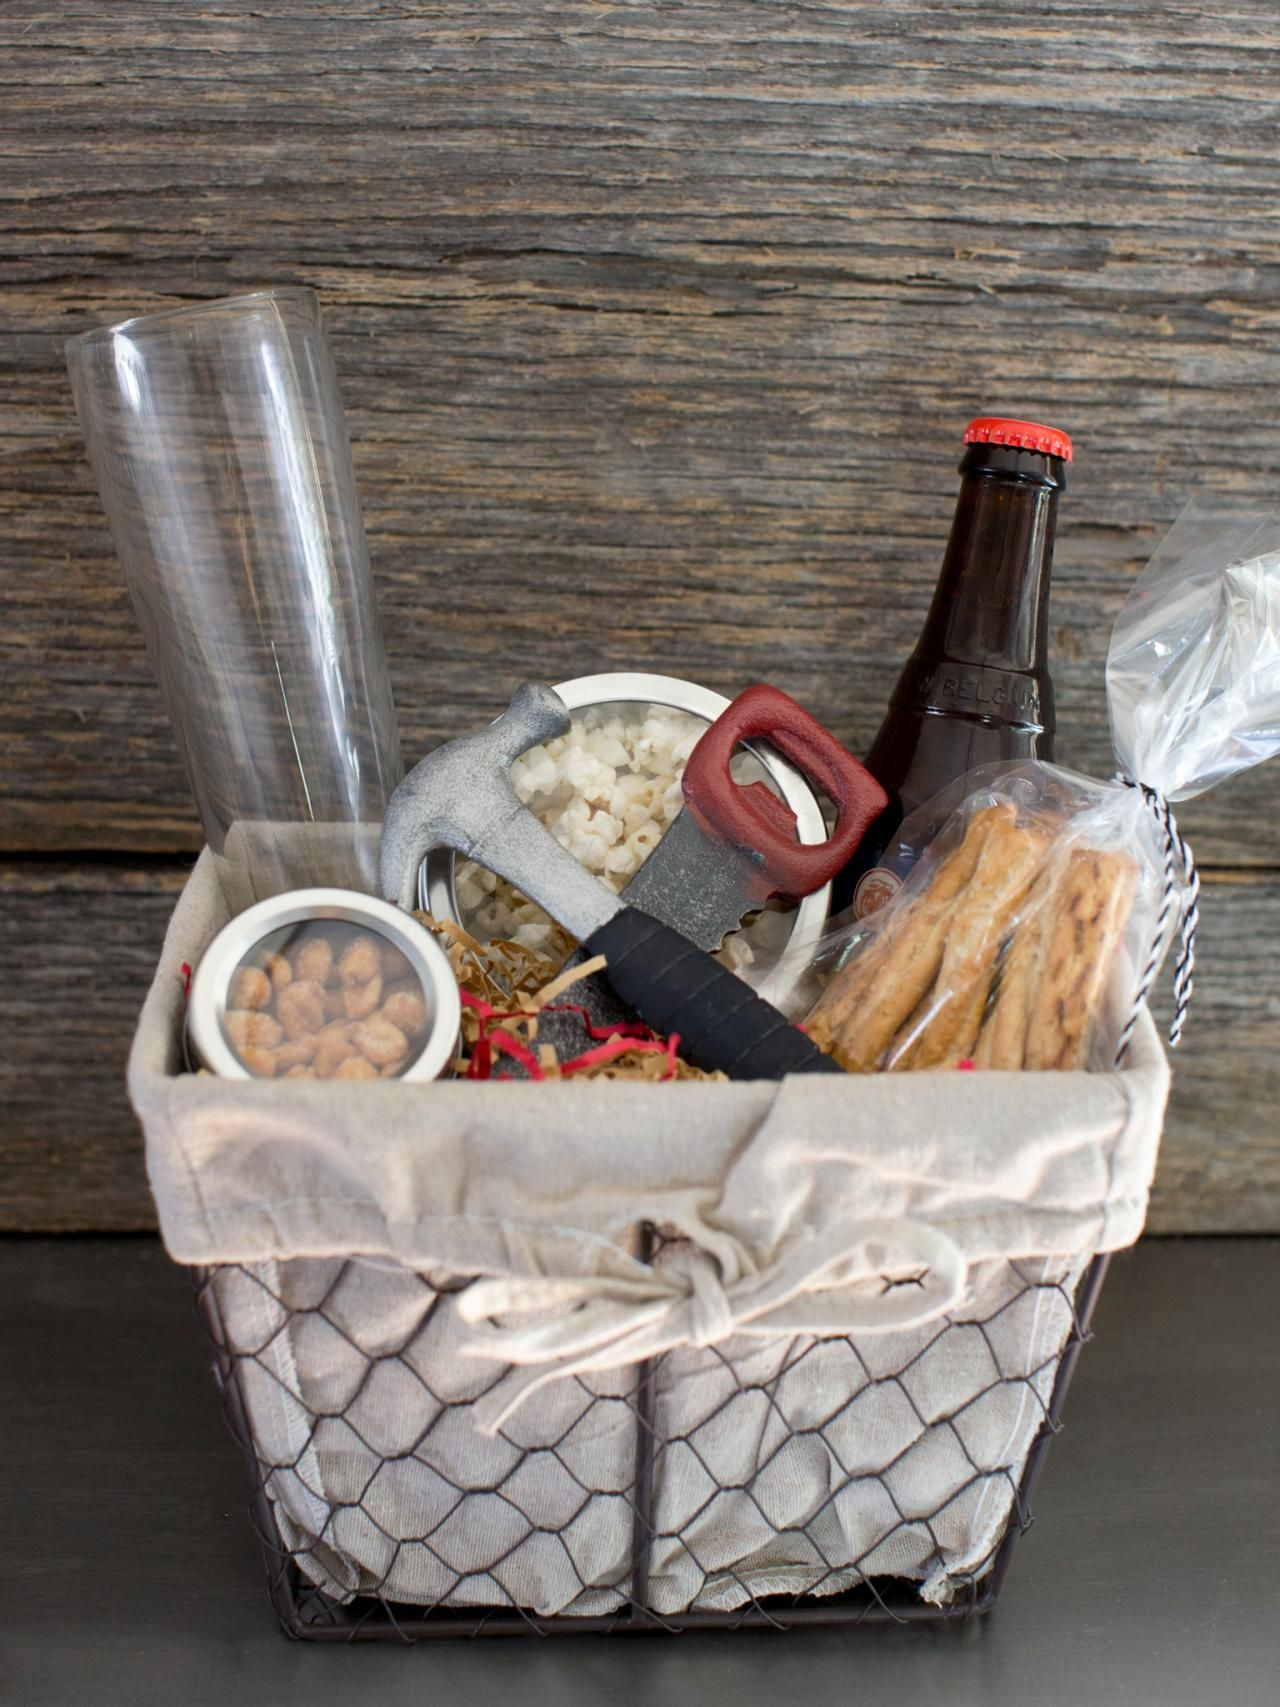 Christmas Gift Baskets | Gift Baskets | Pinterest | Gift baskets ...